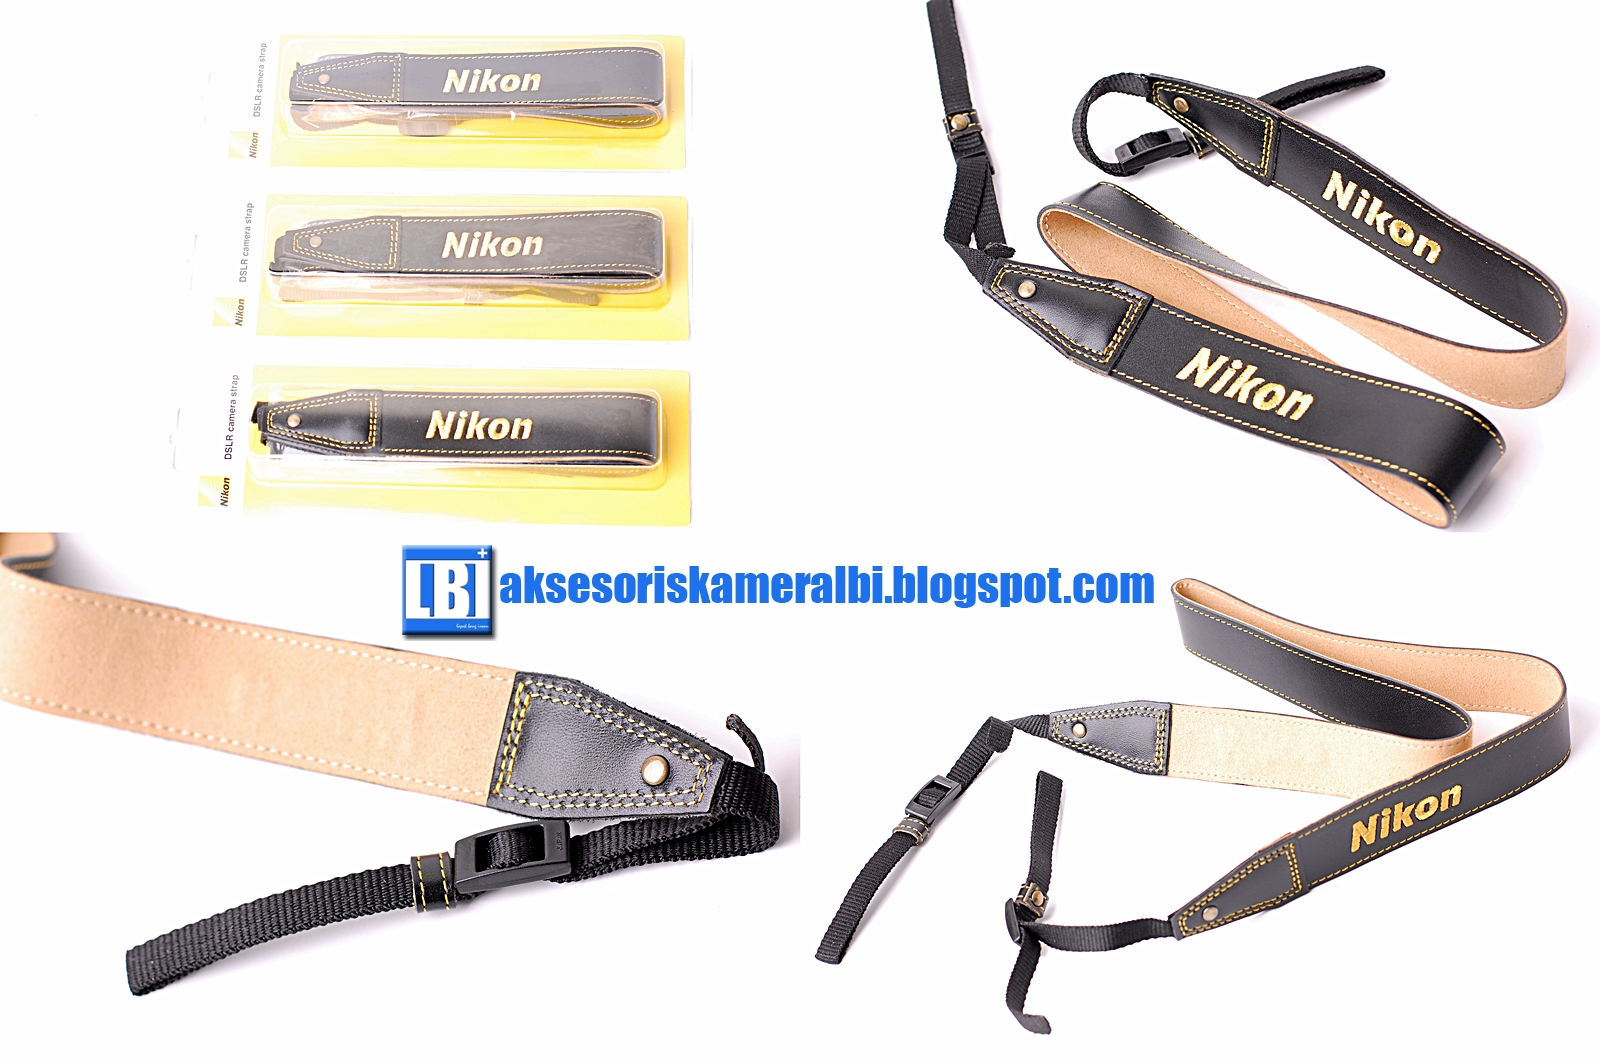 Aksesoris Kamera Indonesia Lbi Jogja Neck Strap For Nikon